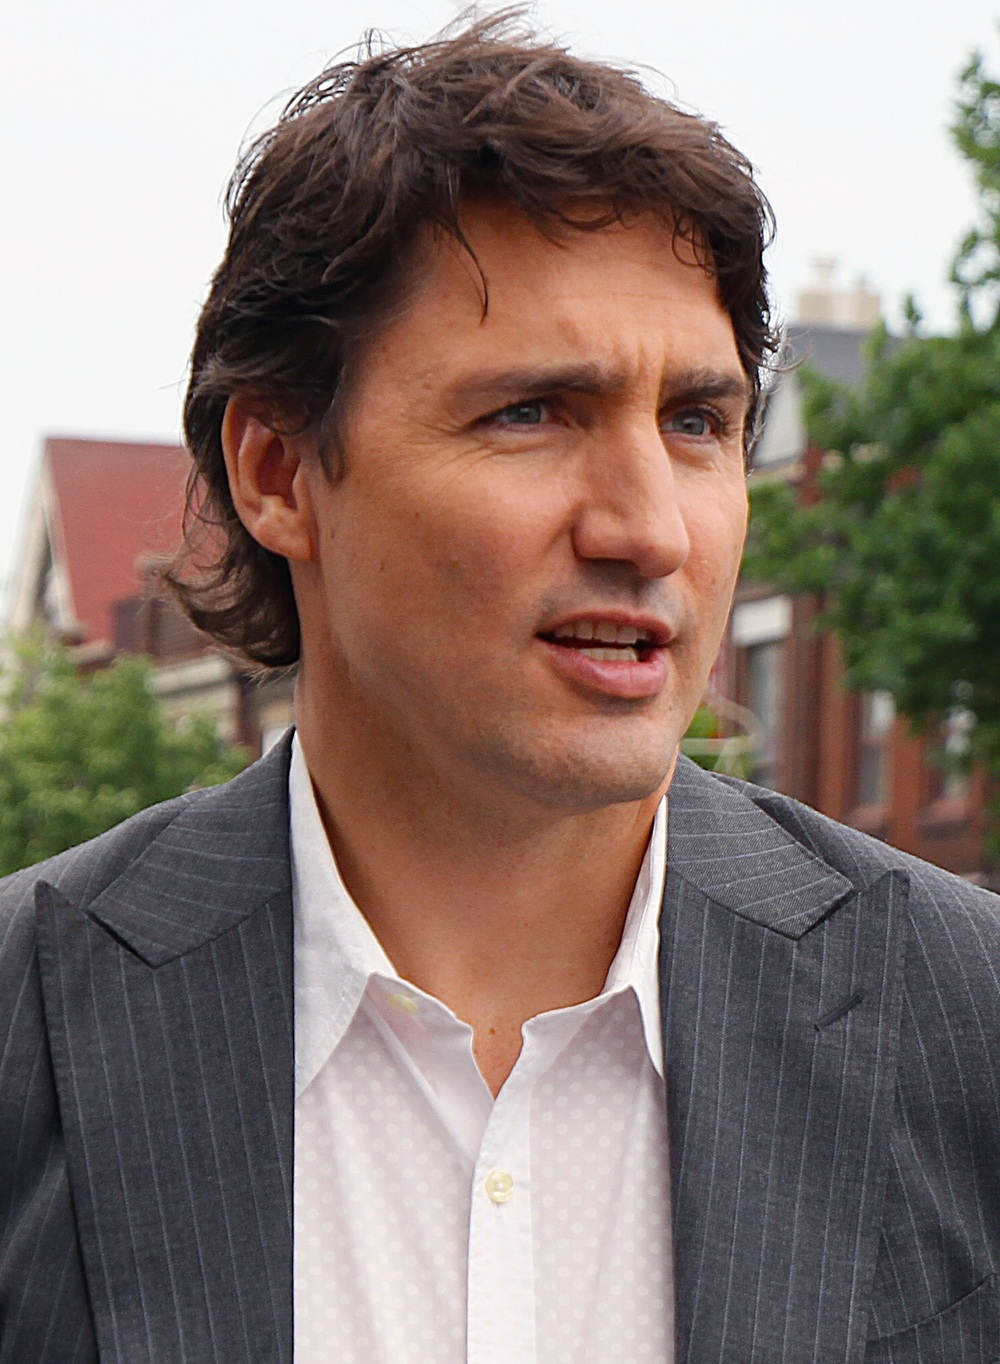 Justin Trudeau says Canada will significantly increase the number of military trainers deployed in theatre. (wikimedia commons)